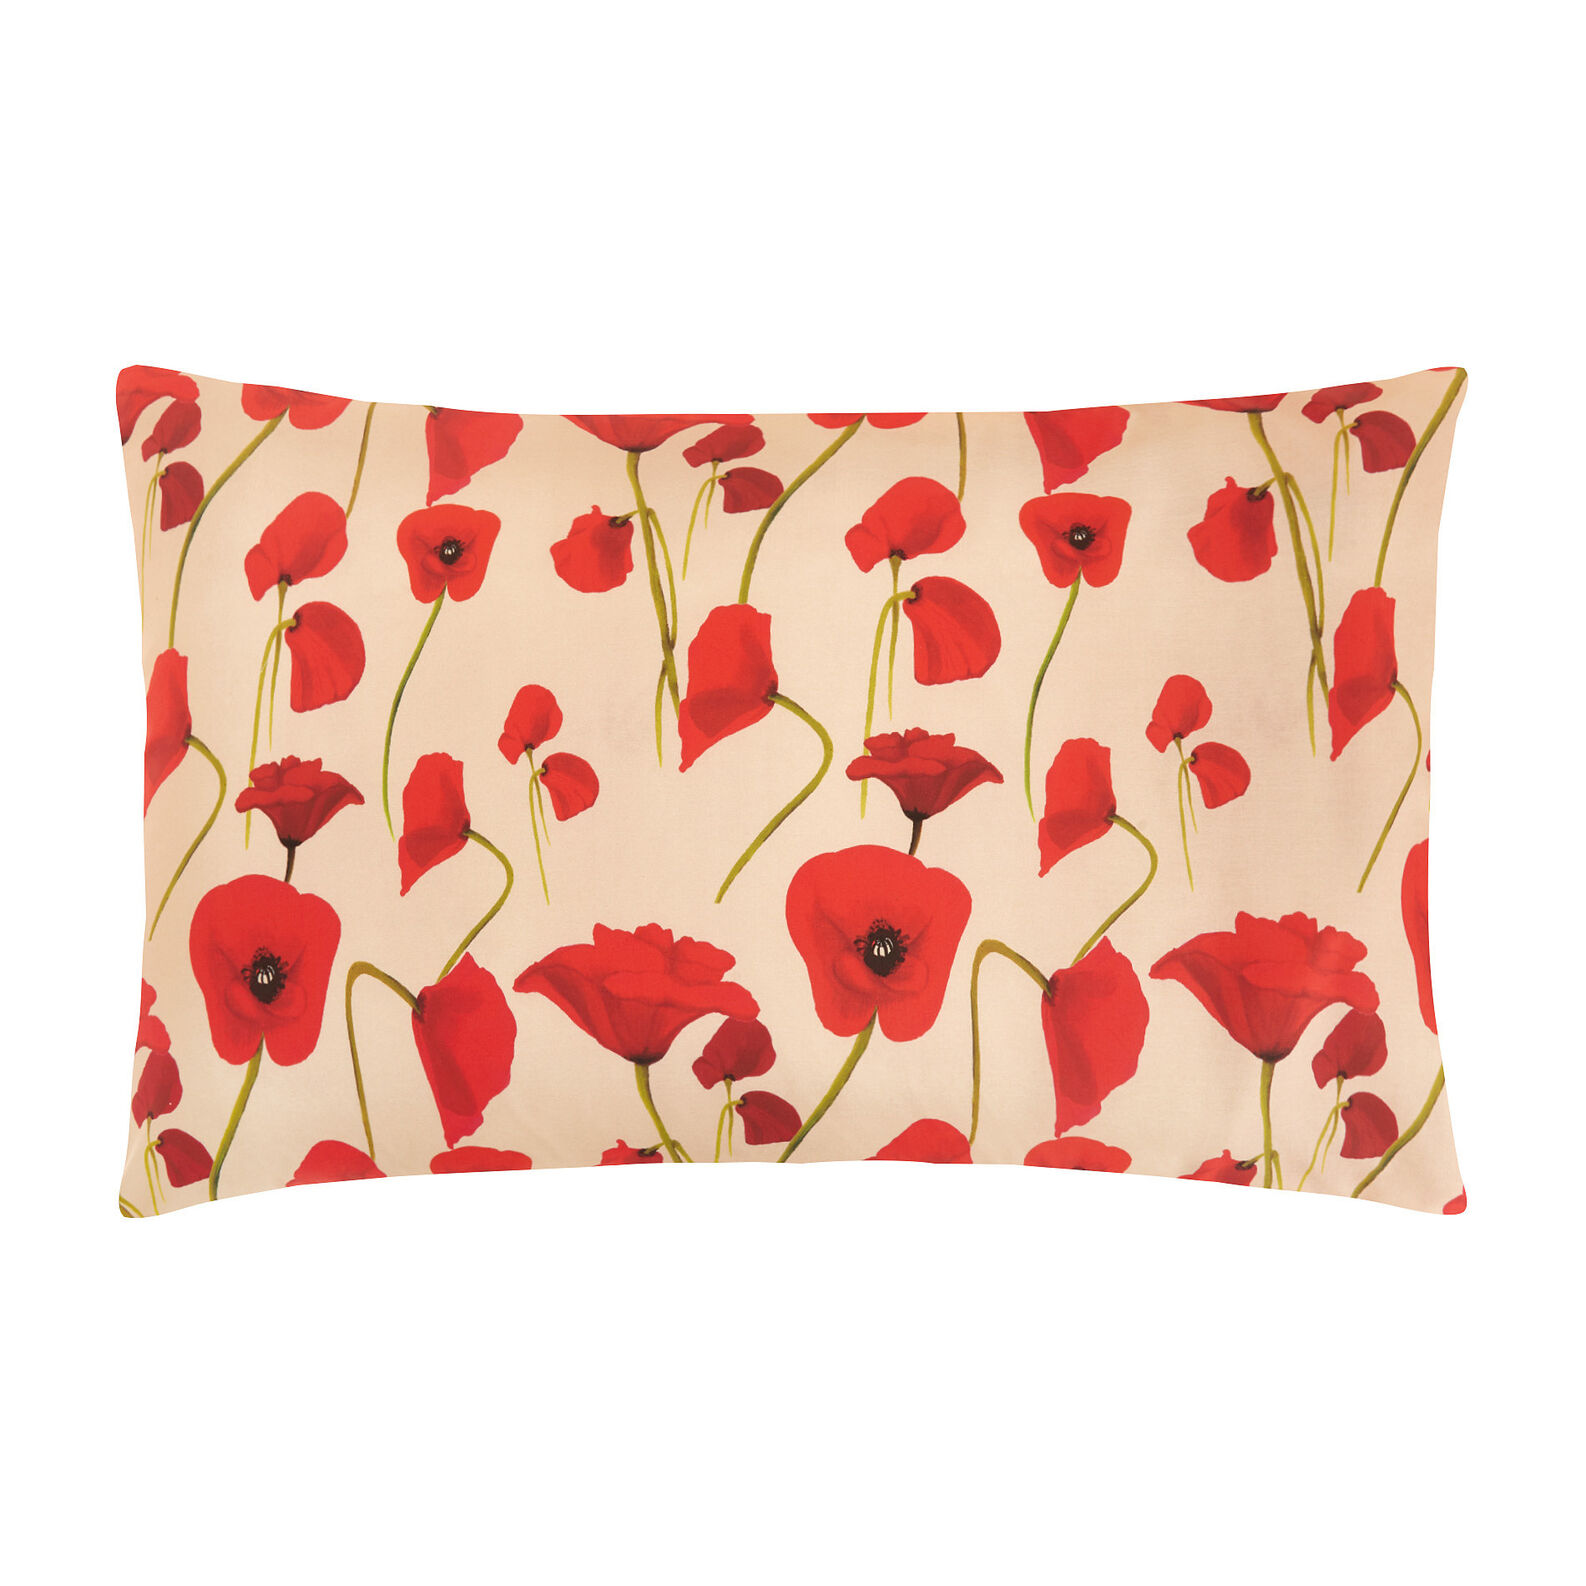 Cotton percale pillowcase with poppy pattern